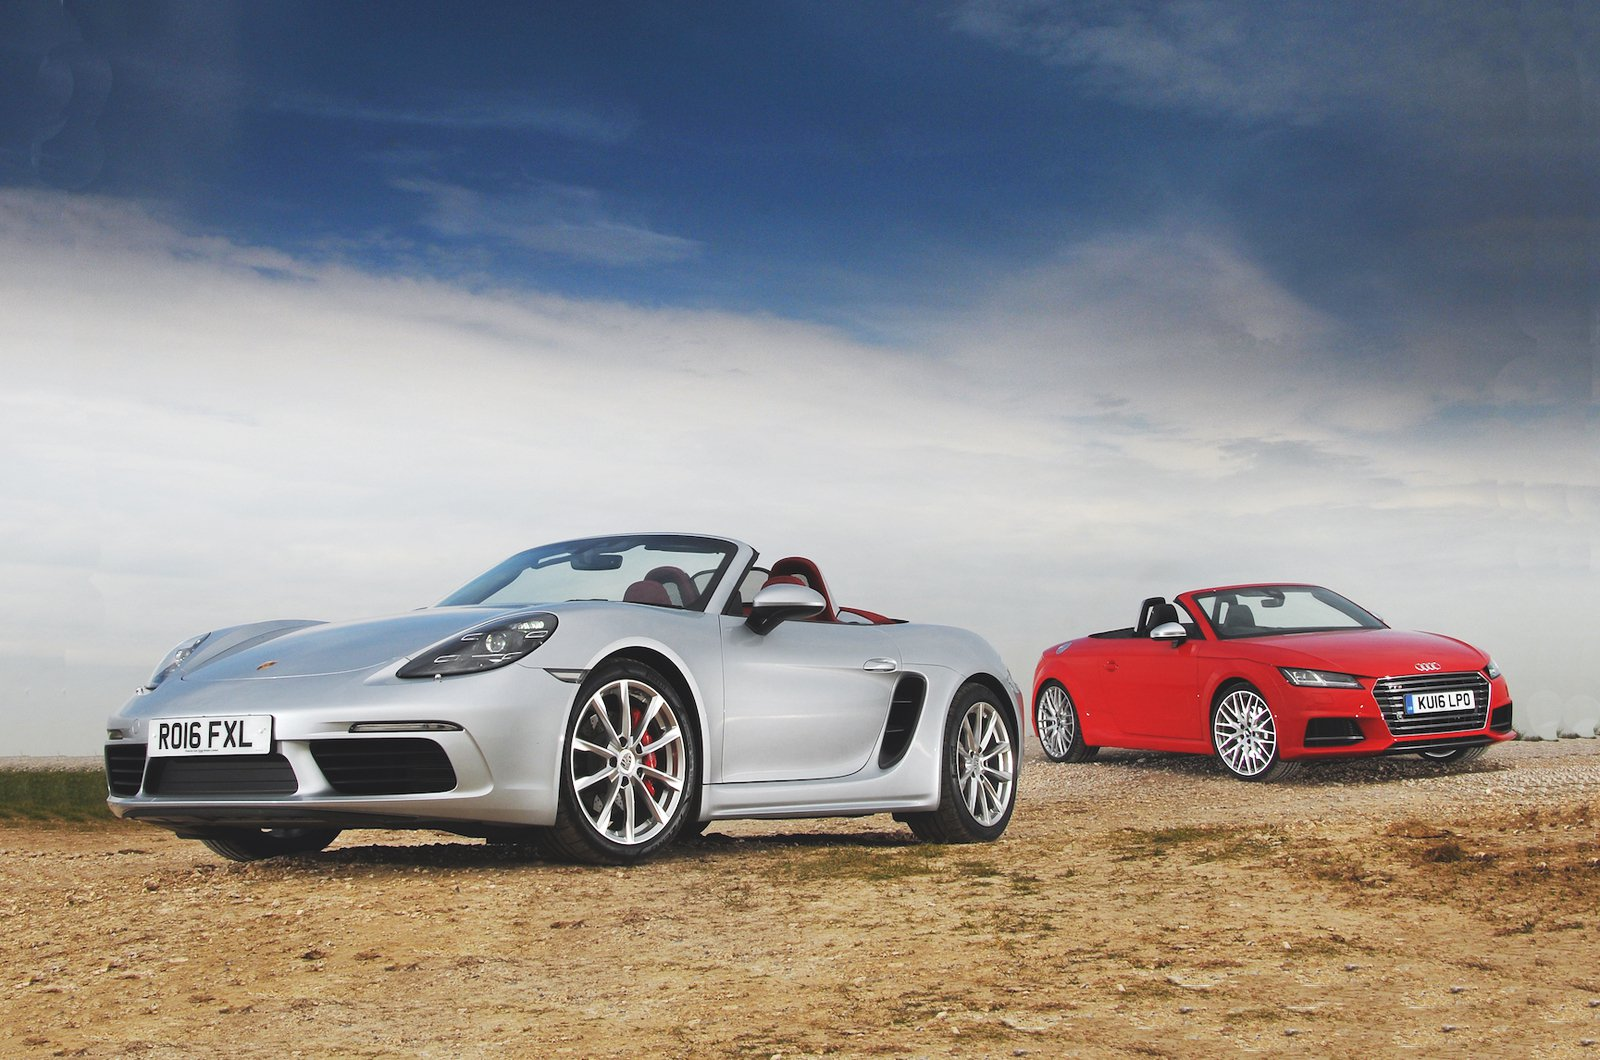 Porsche 718 Boxster and Audi TTS Roadster